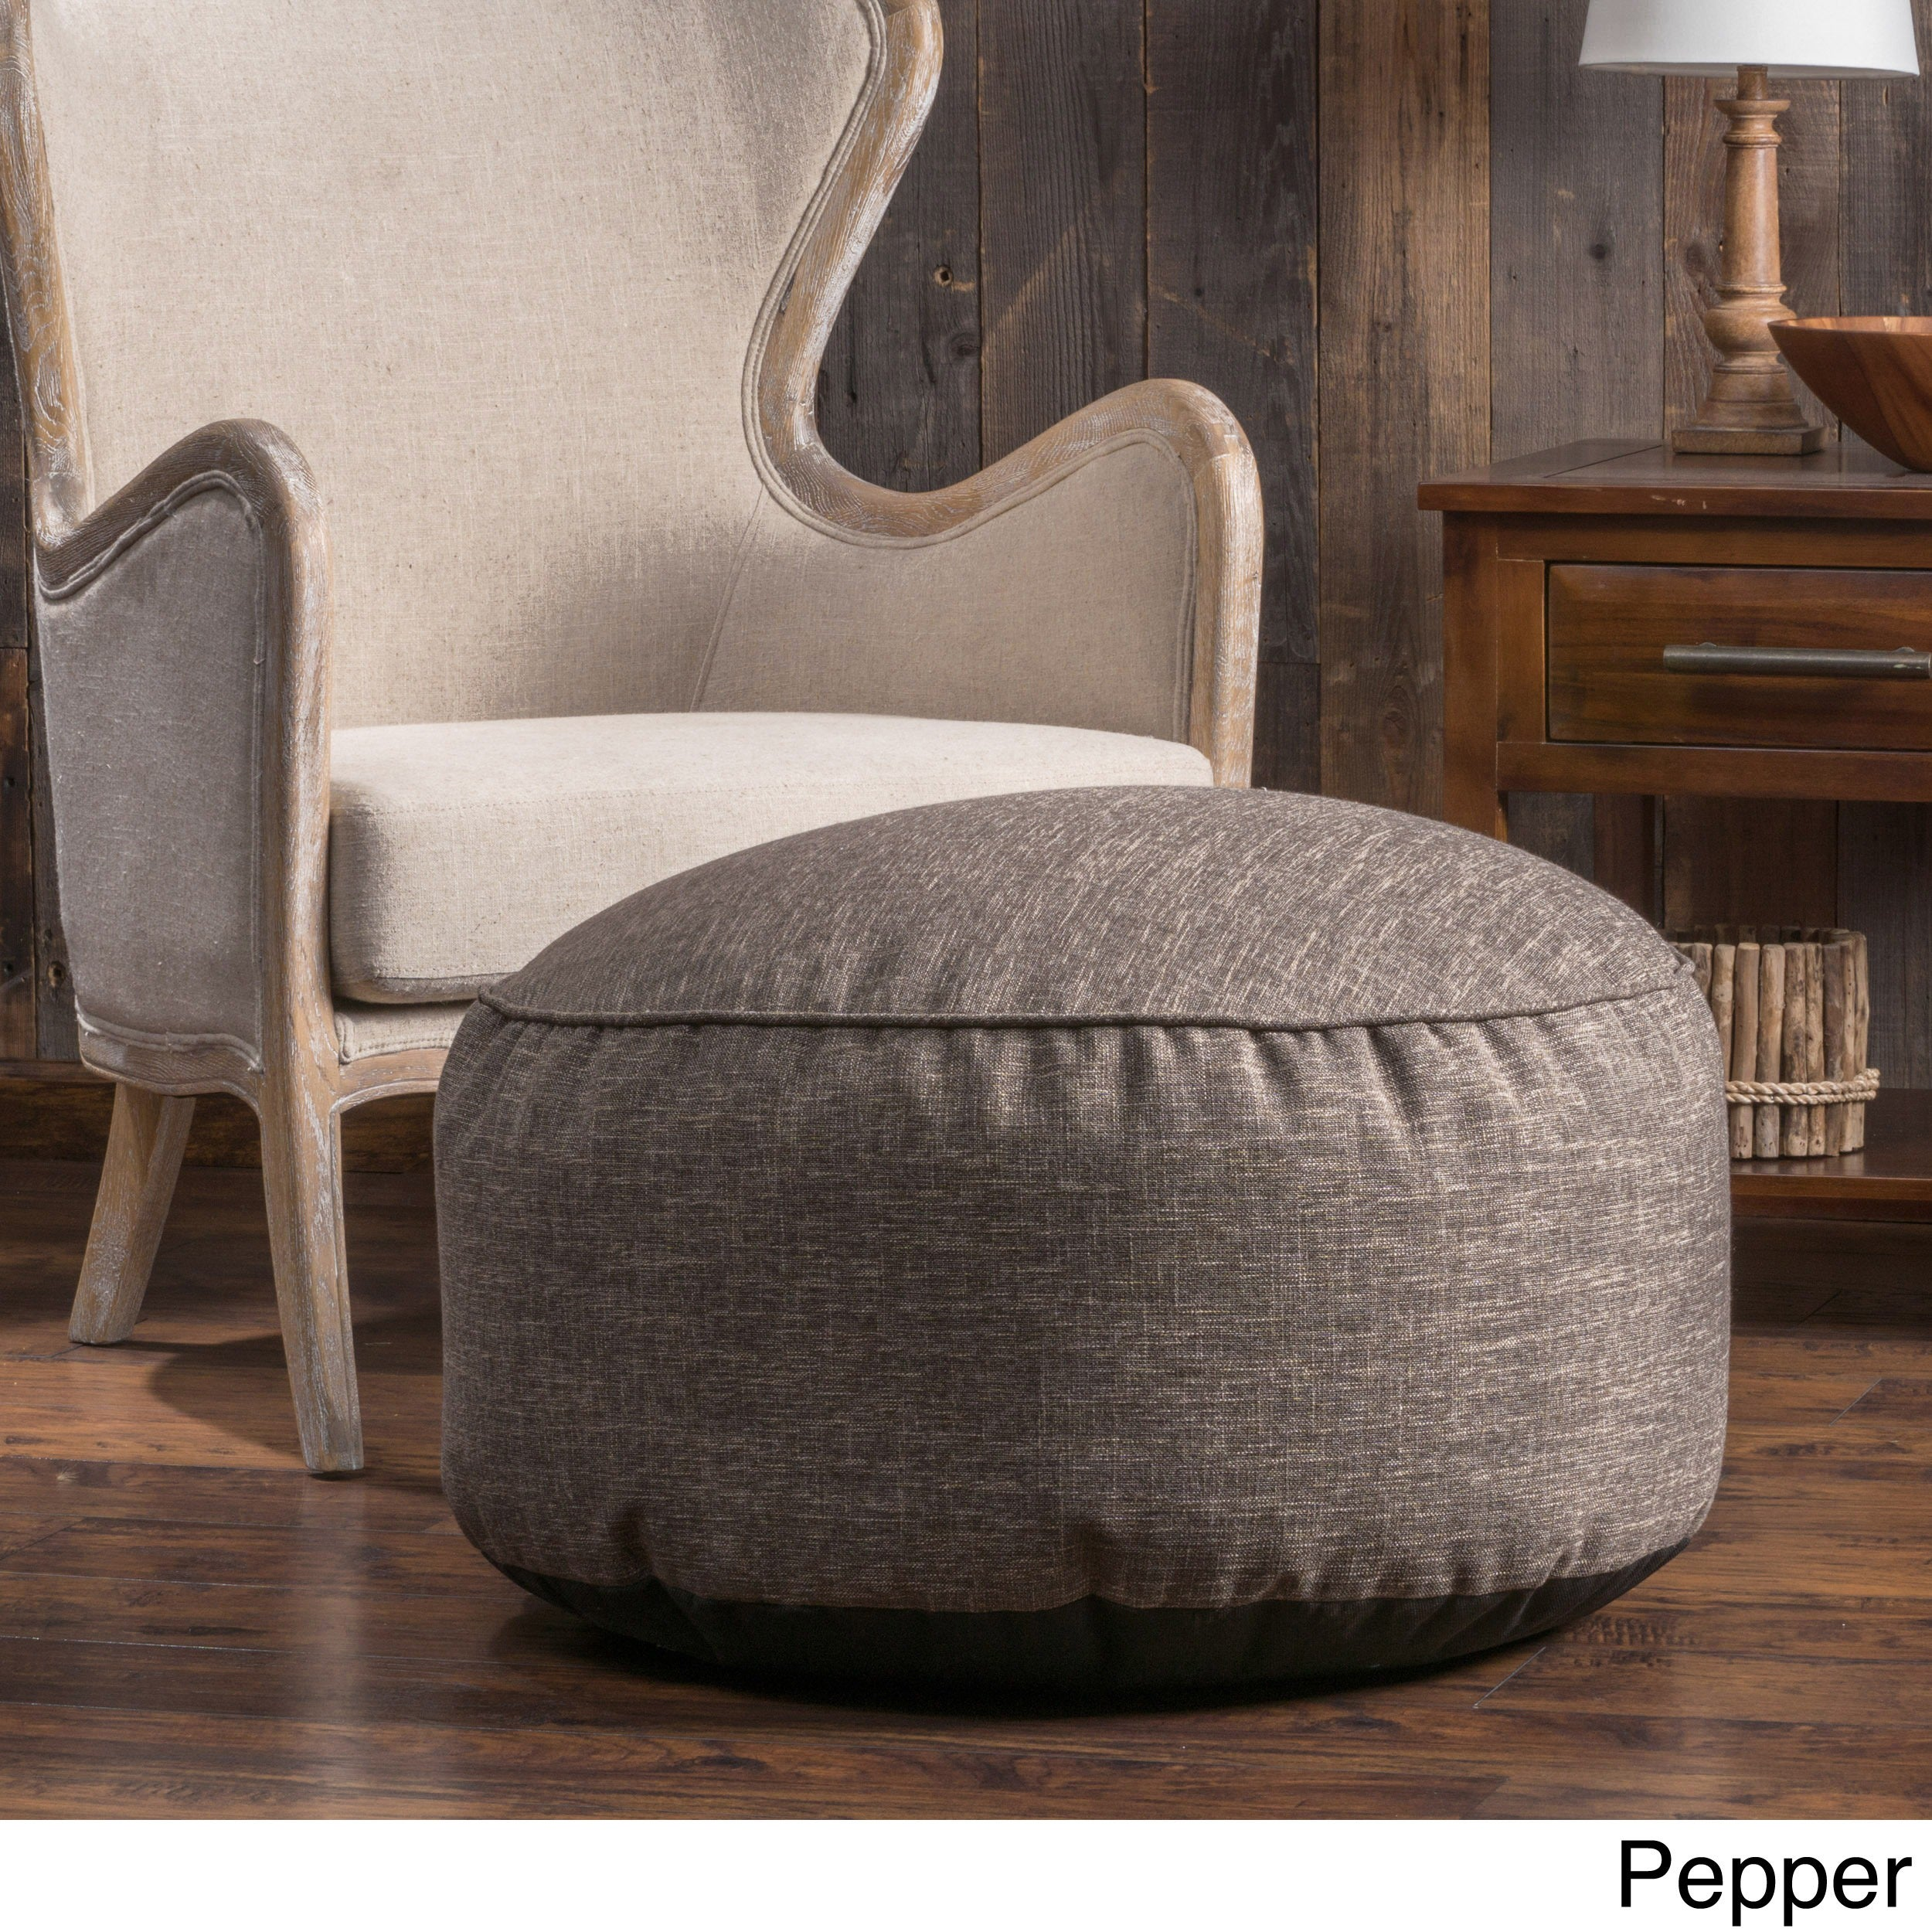 Christopher Knight Home Hendrix Round Fabric Pouf Ottoman Free Shipping Today 10566688